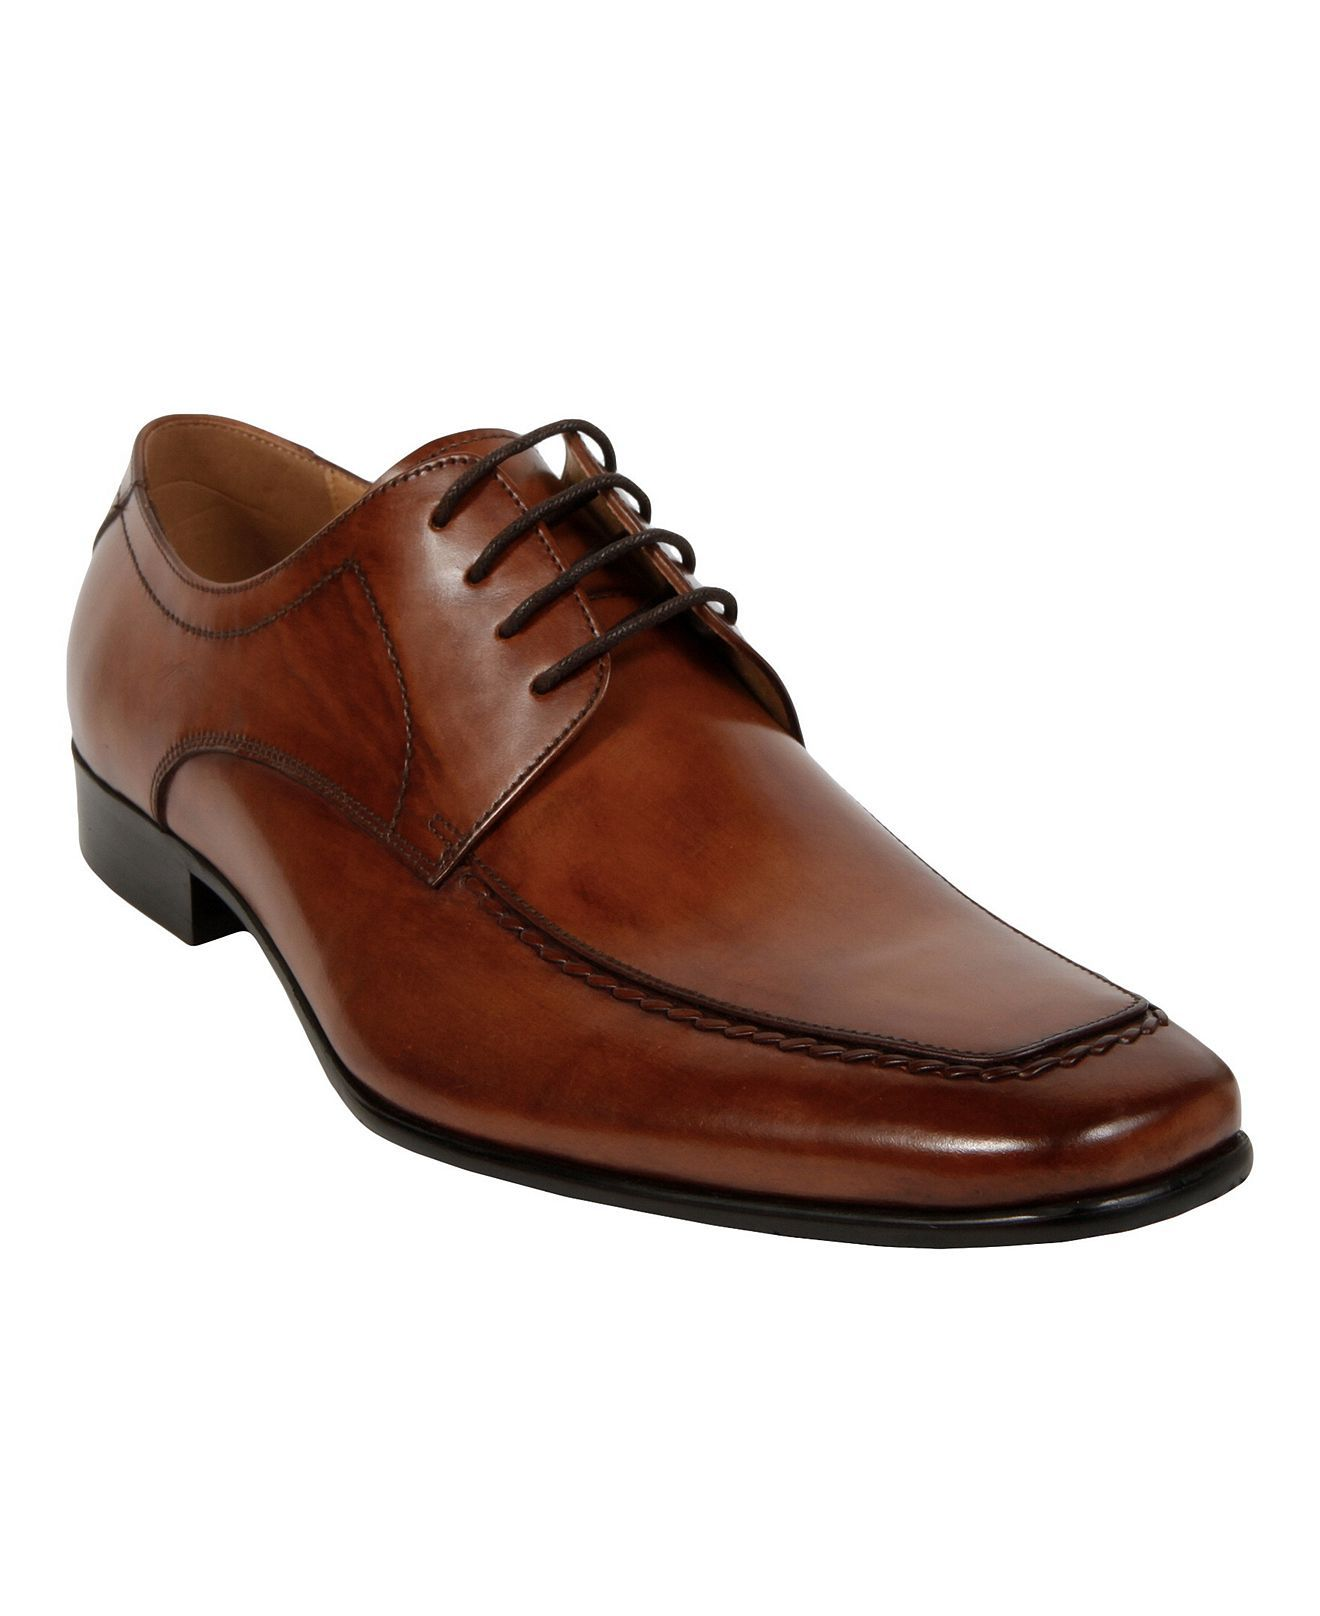 Steve Madden Shoes, Pallow Oxfords - All Men's Shoes - Men - Macy's